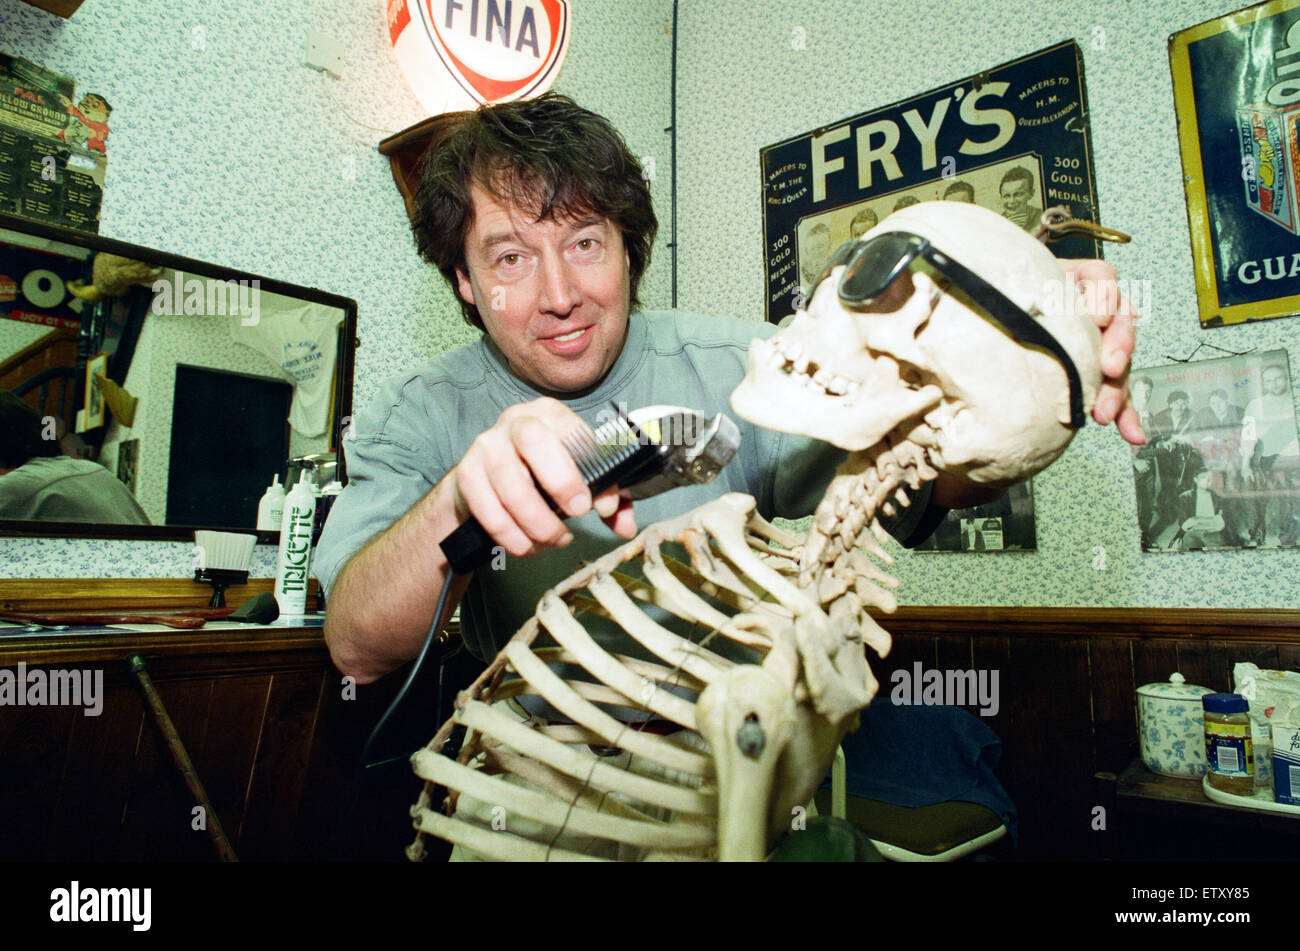 It's a case of shaving close to the bone as Redcar demon barber Mike Forbes gets to work with a skeleton staff. - Stock Image